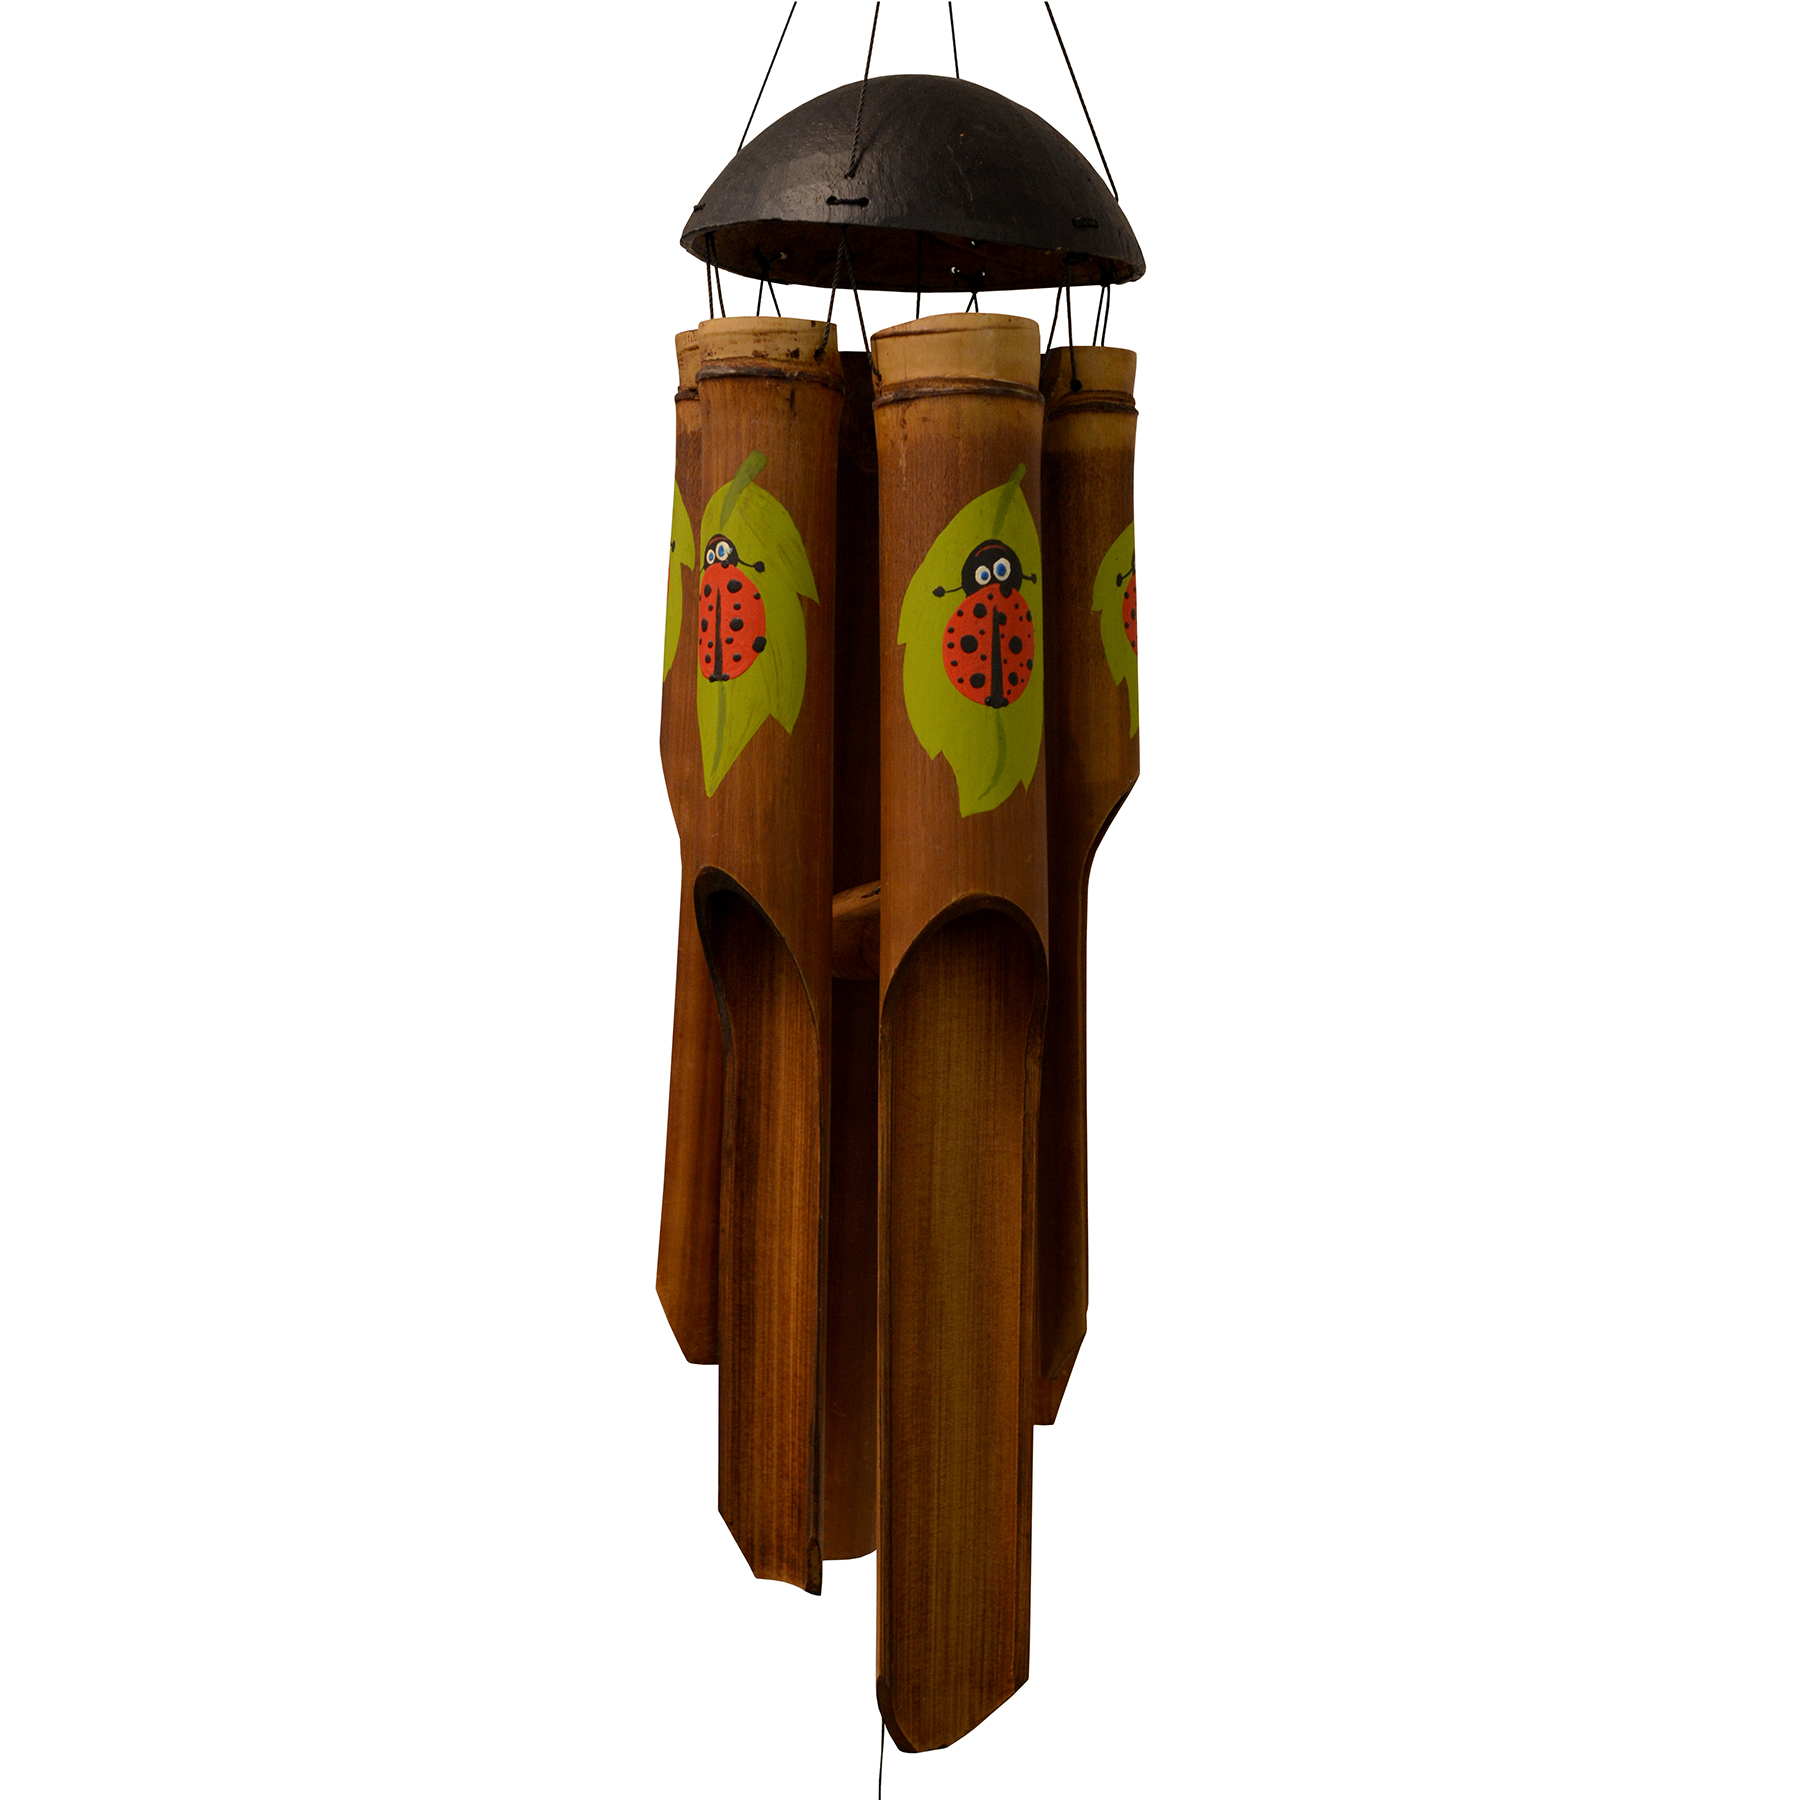 204, 205 - Ladybug Simple Bamboo Wind Chime